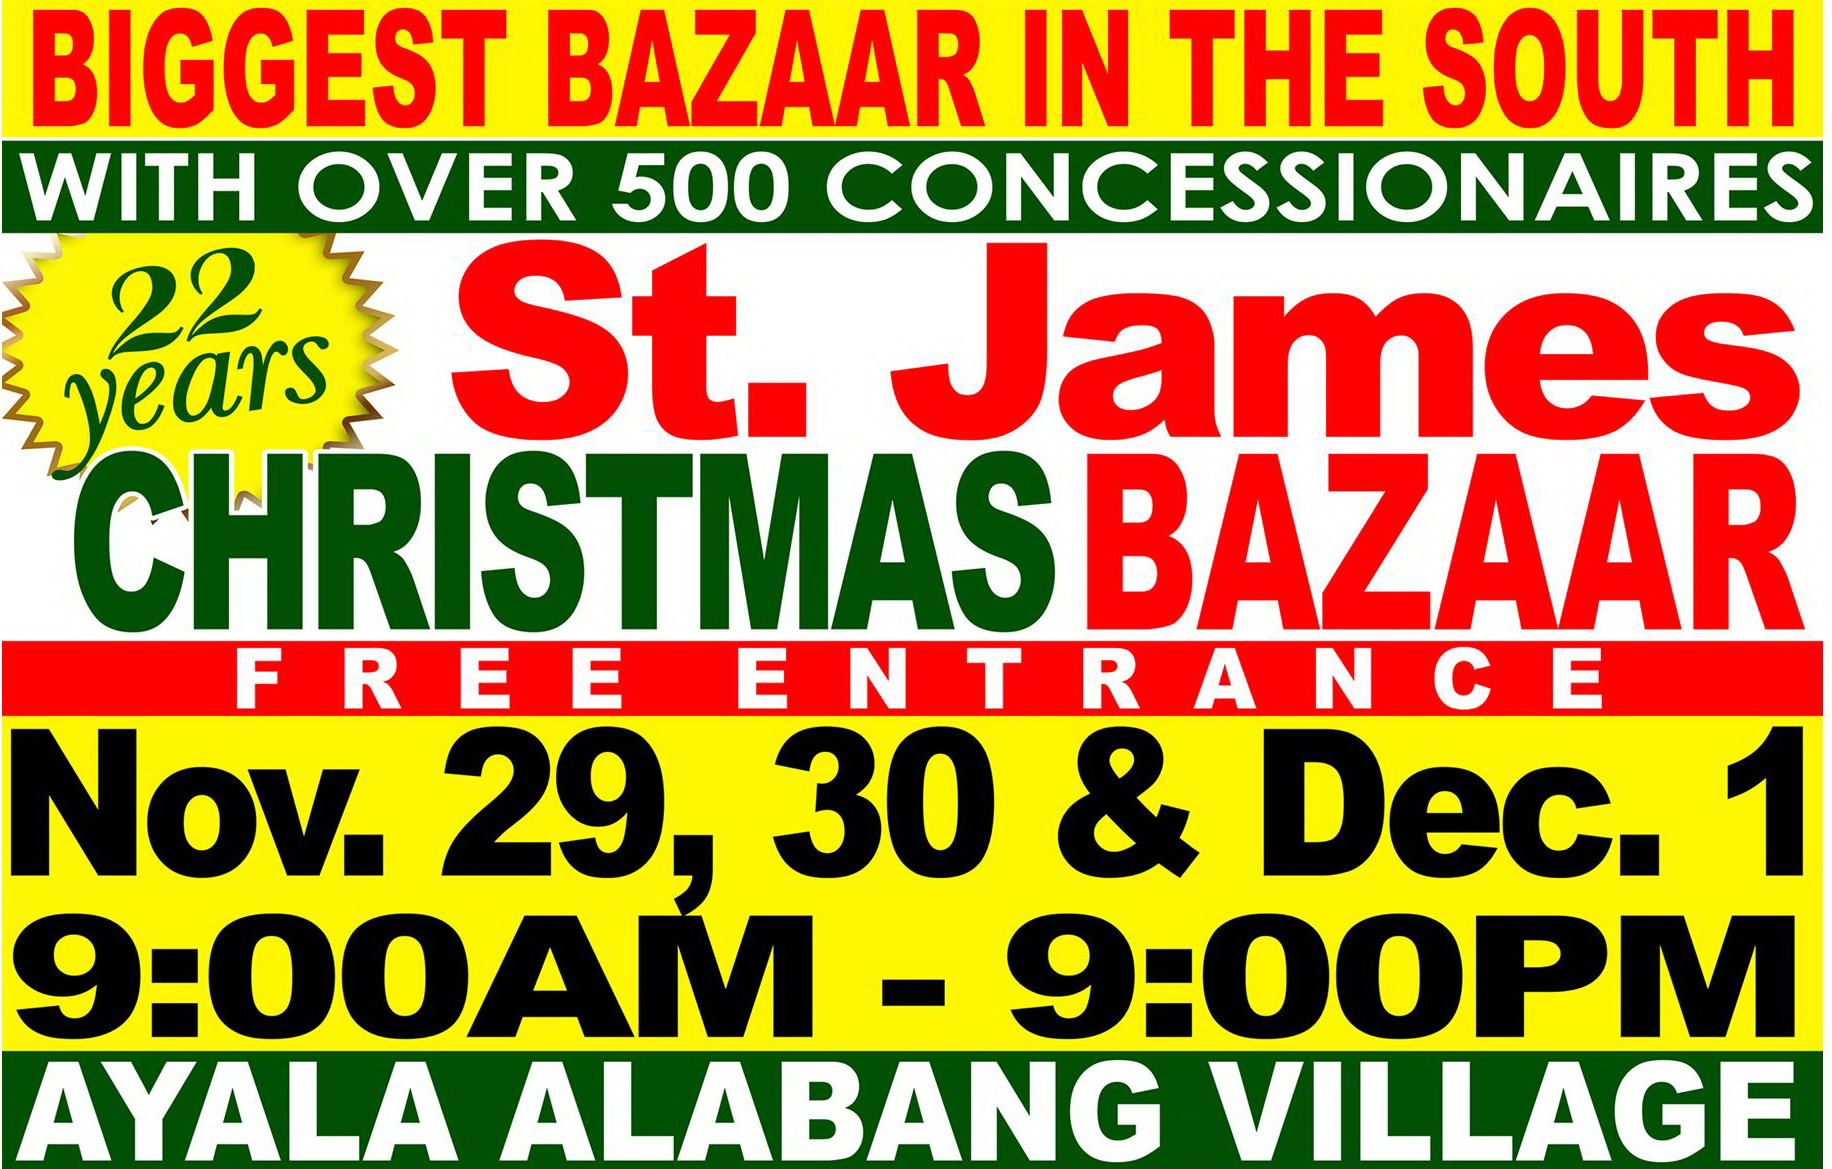 St. James Christmas Bazaar @ Ayala Alabang Village November - December 2013